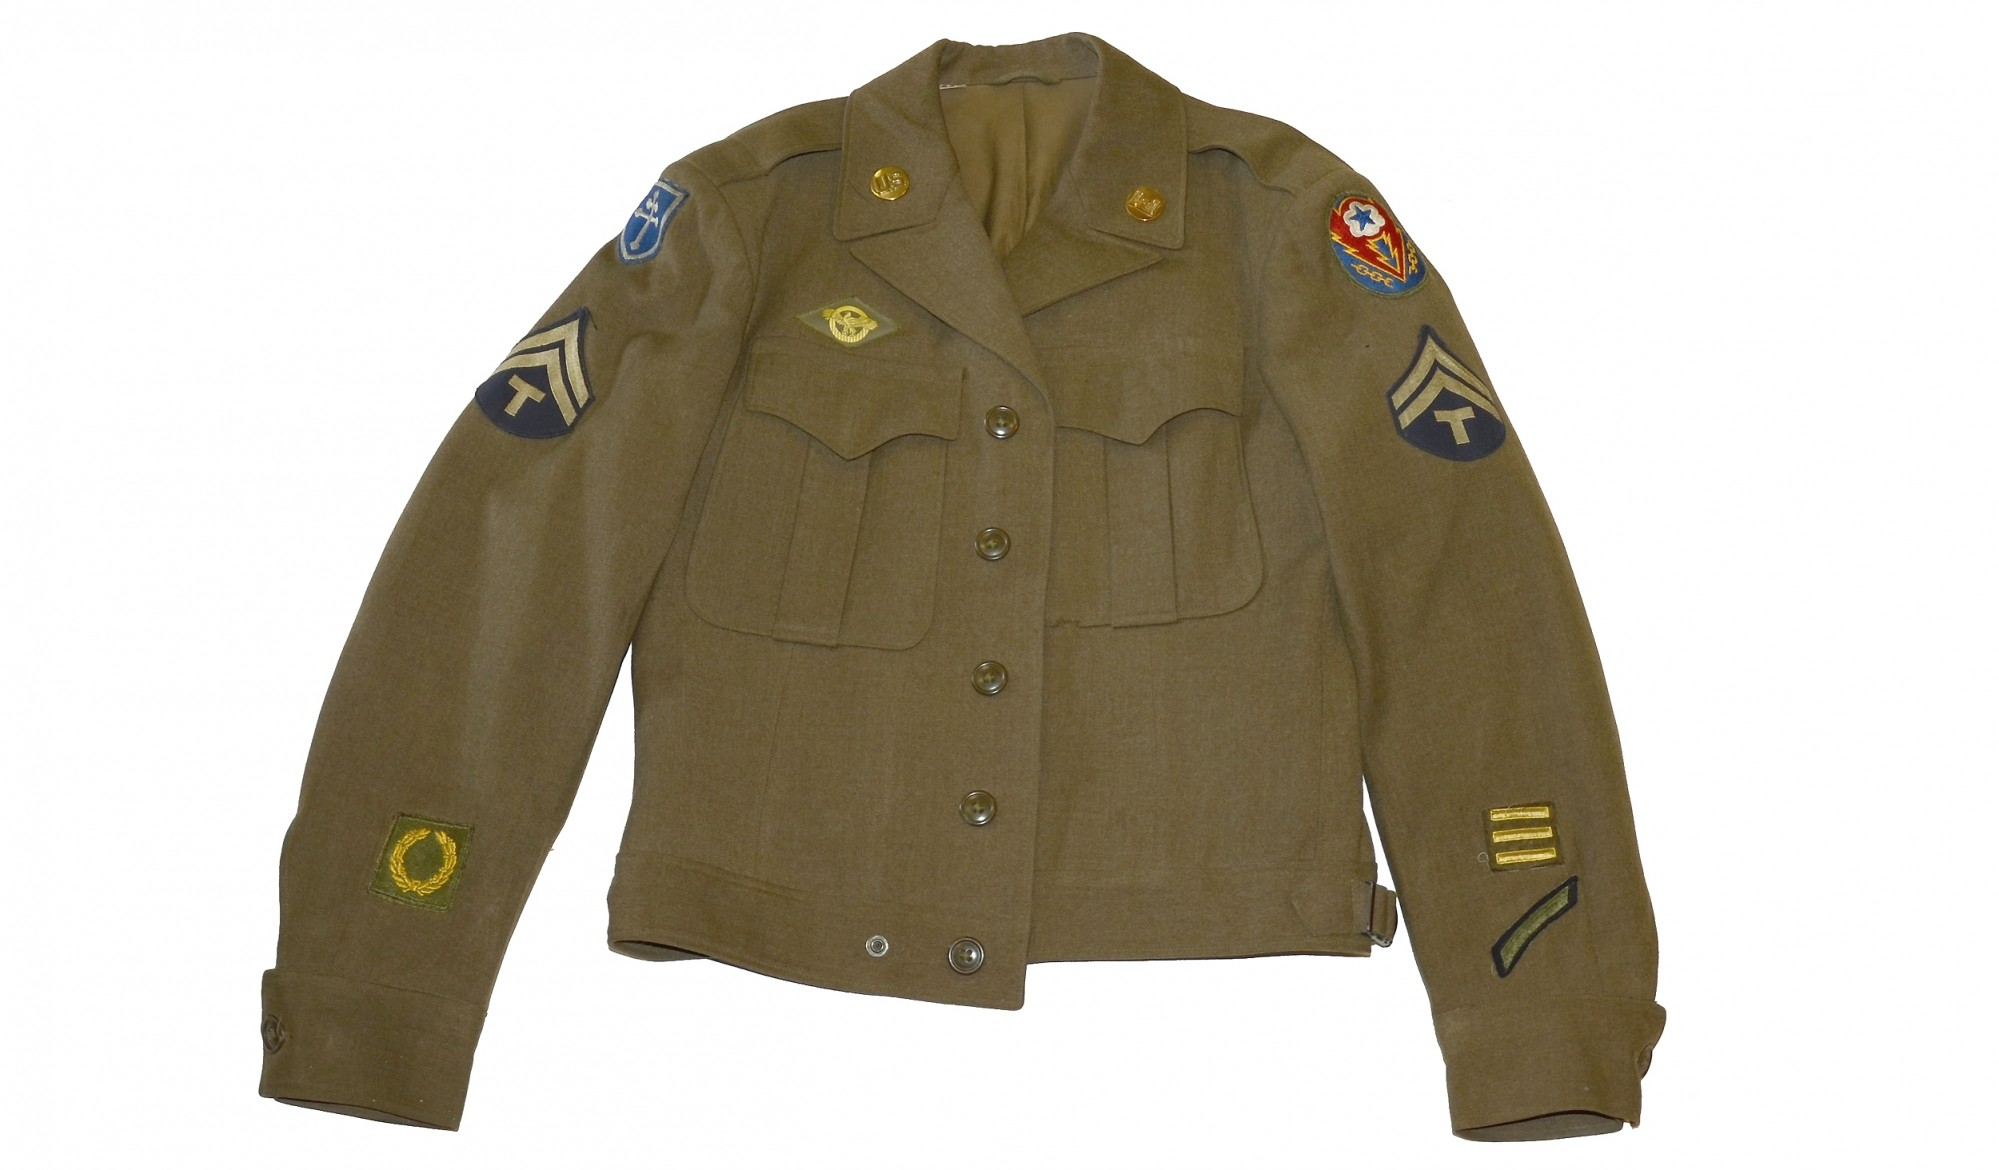 DOUBLE PATCHED WORLD WAR II 79TH INFANTRY DIVISION IKE JACKET